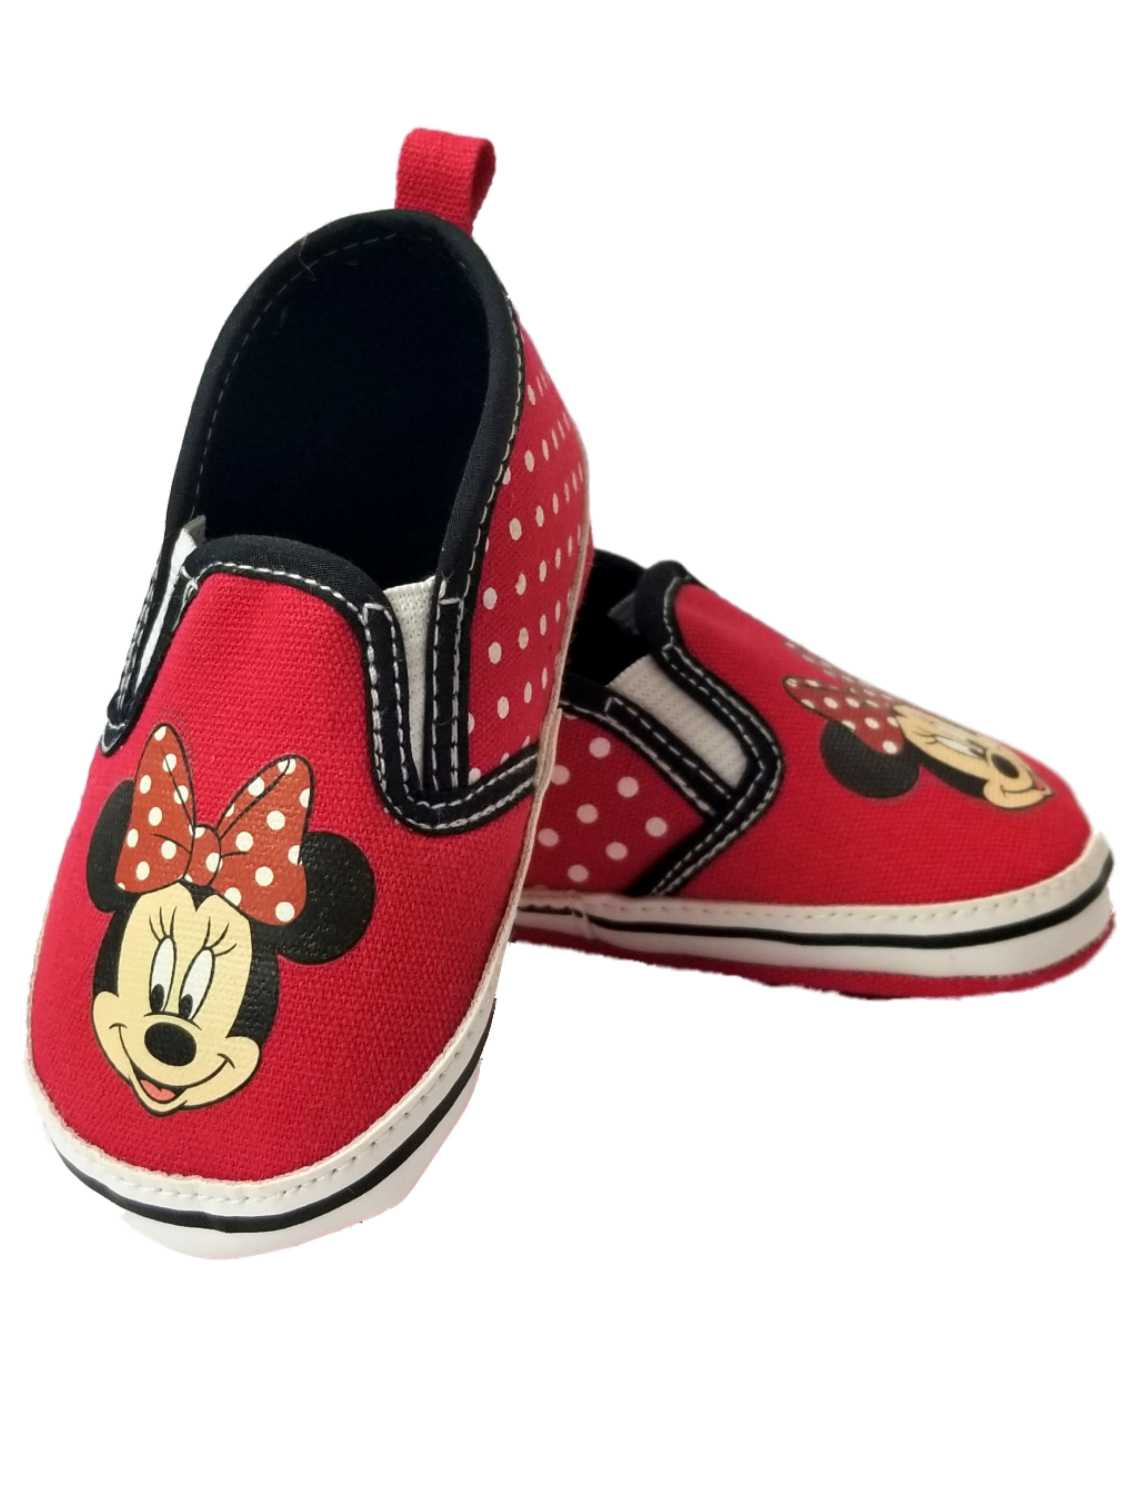 Disney Baby Infant Girls Red Polka Dot Minnie Mouse Ears Loafer House Shoes